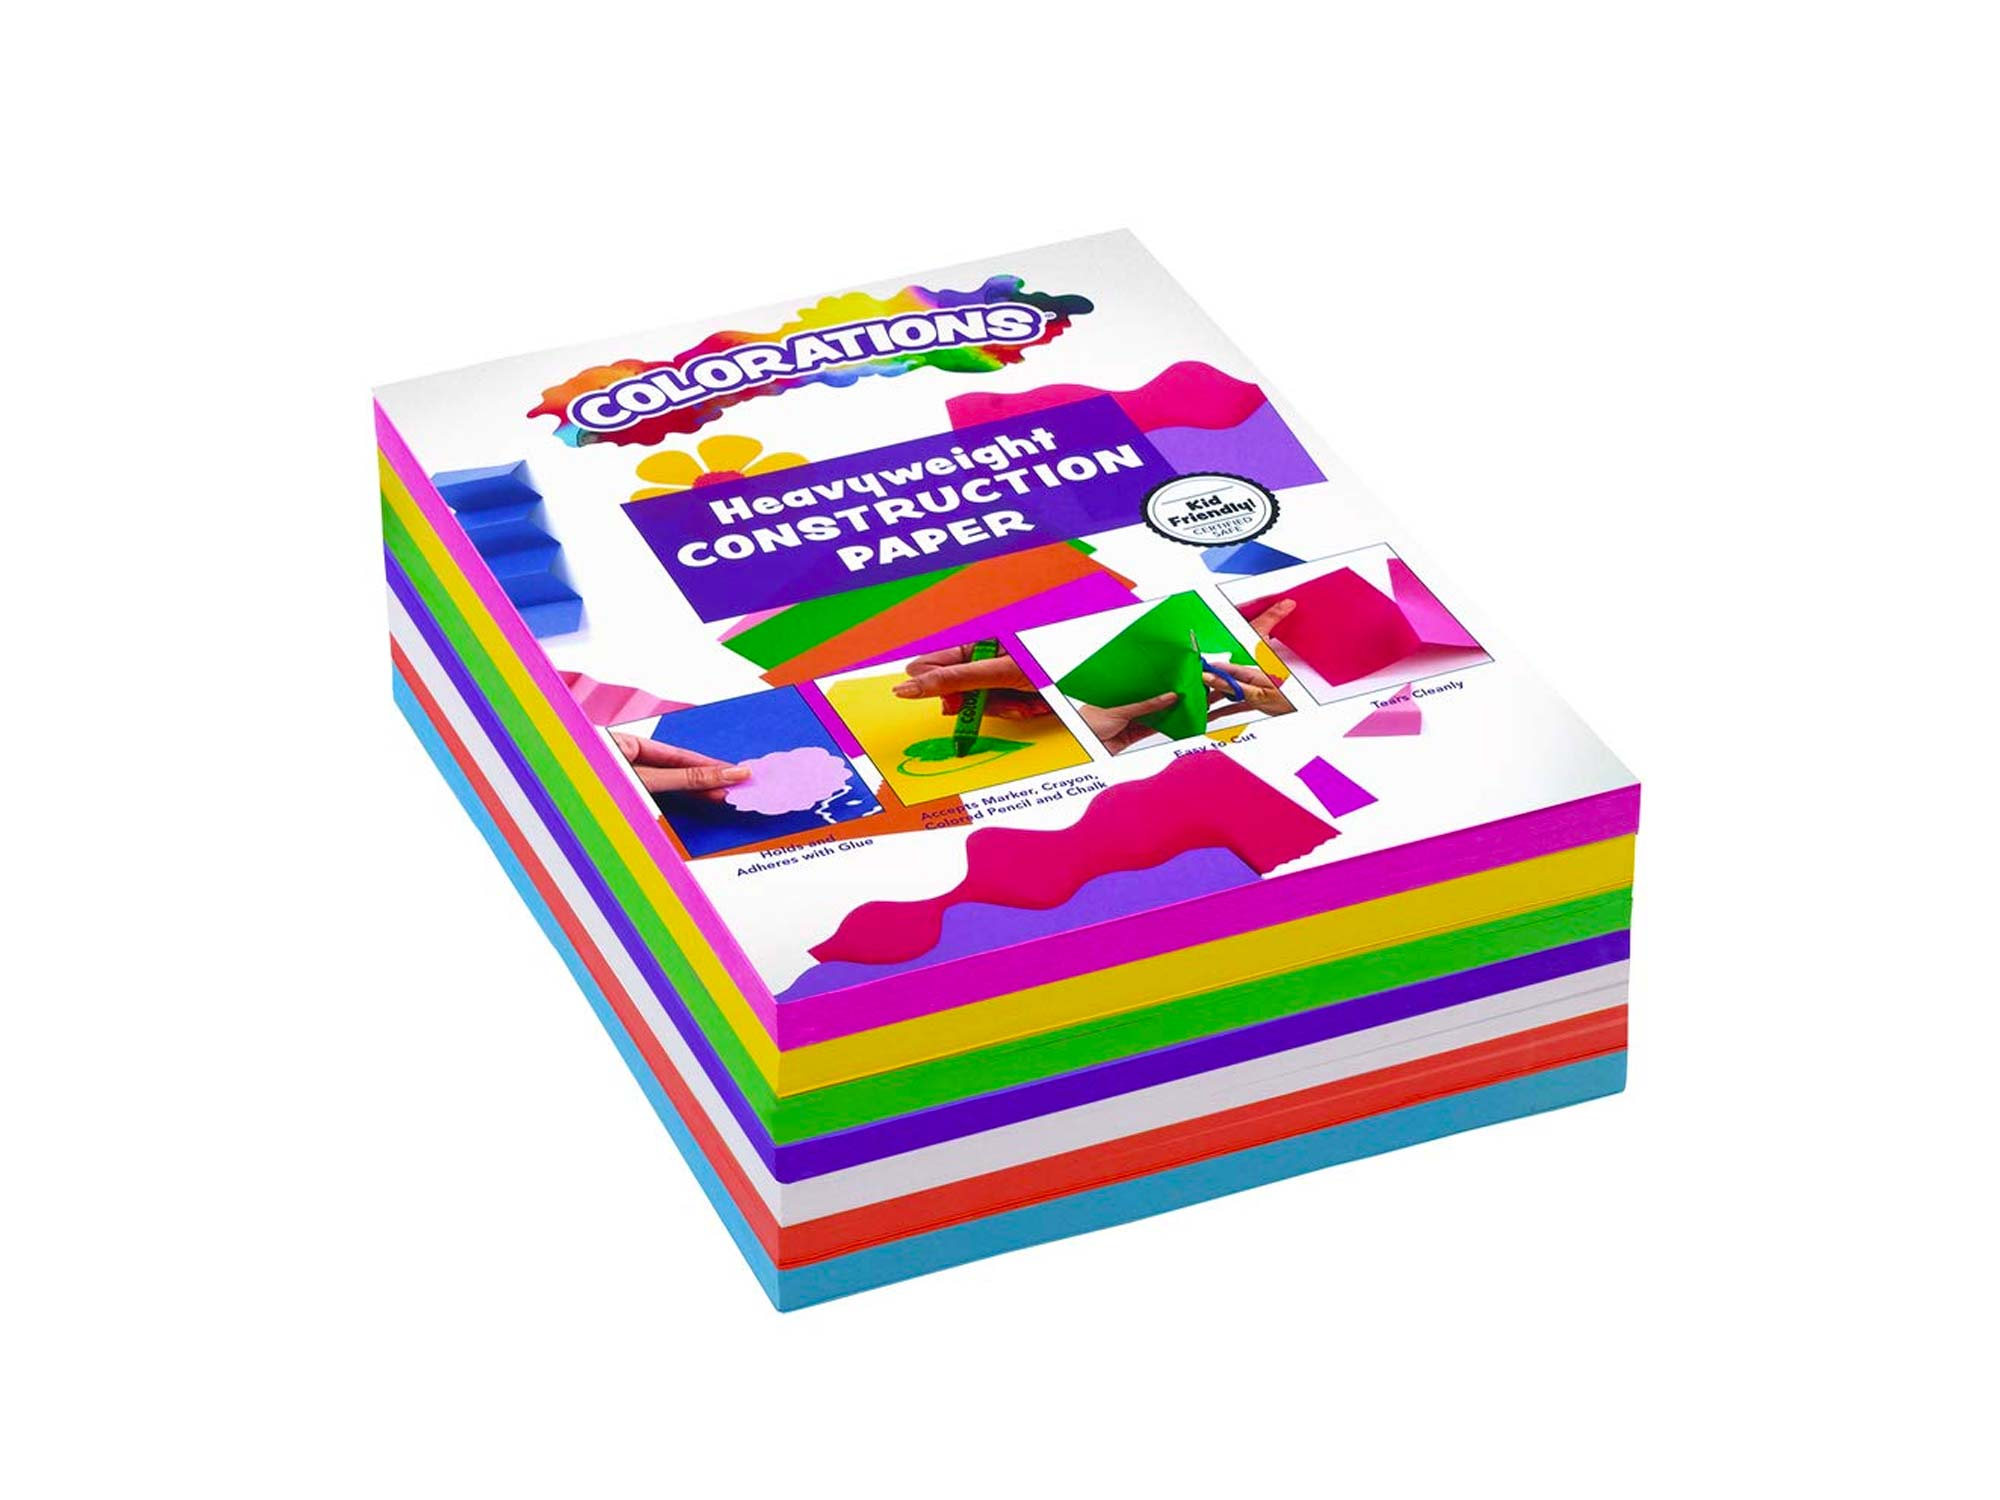 Colorations BRITESTK Bright Construction Paper Smart Pack Multicolor Variety Pack Classroom Supplies for Kids